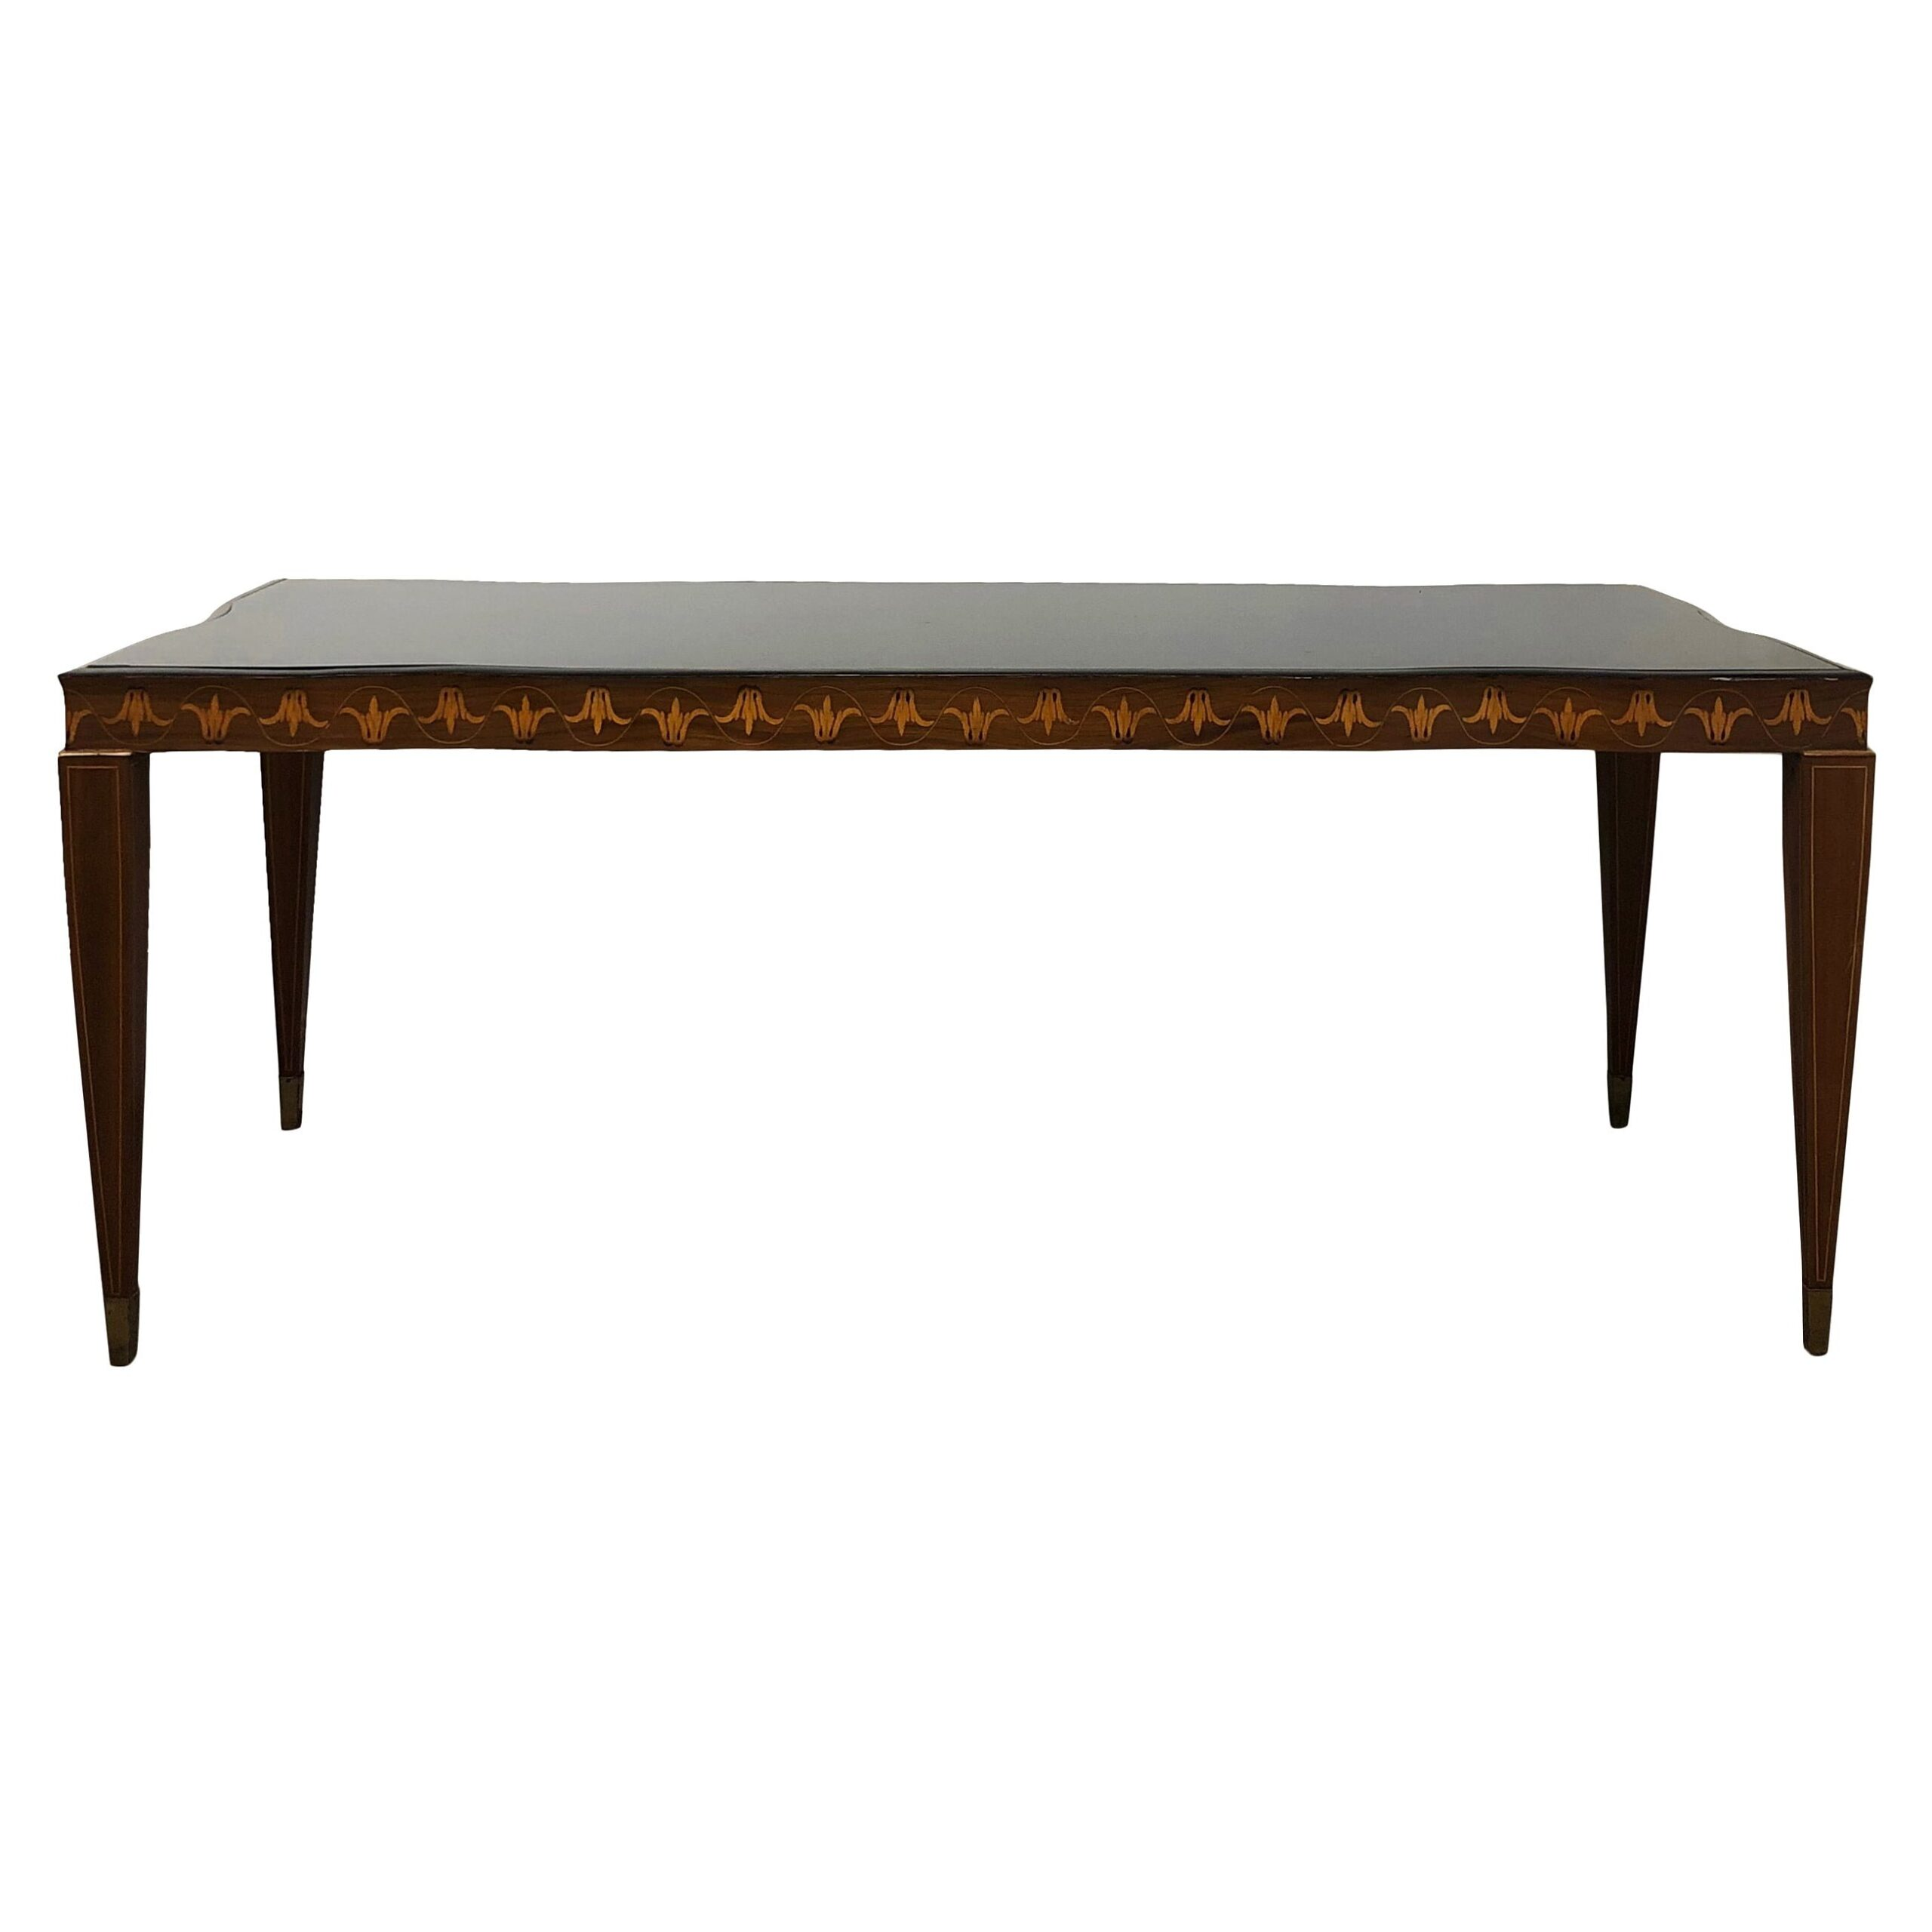 20th Century Italian Rectangular Rosewood Dining Table by Paolo Buffa